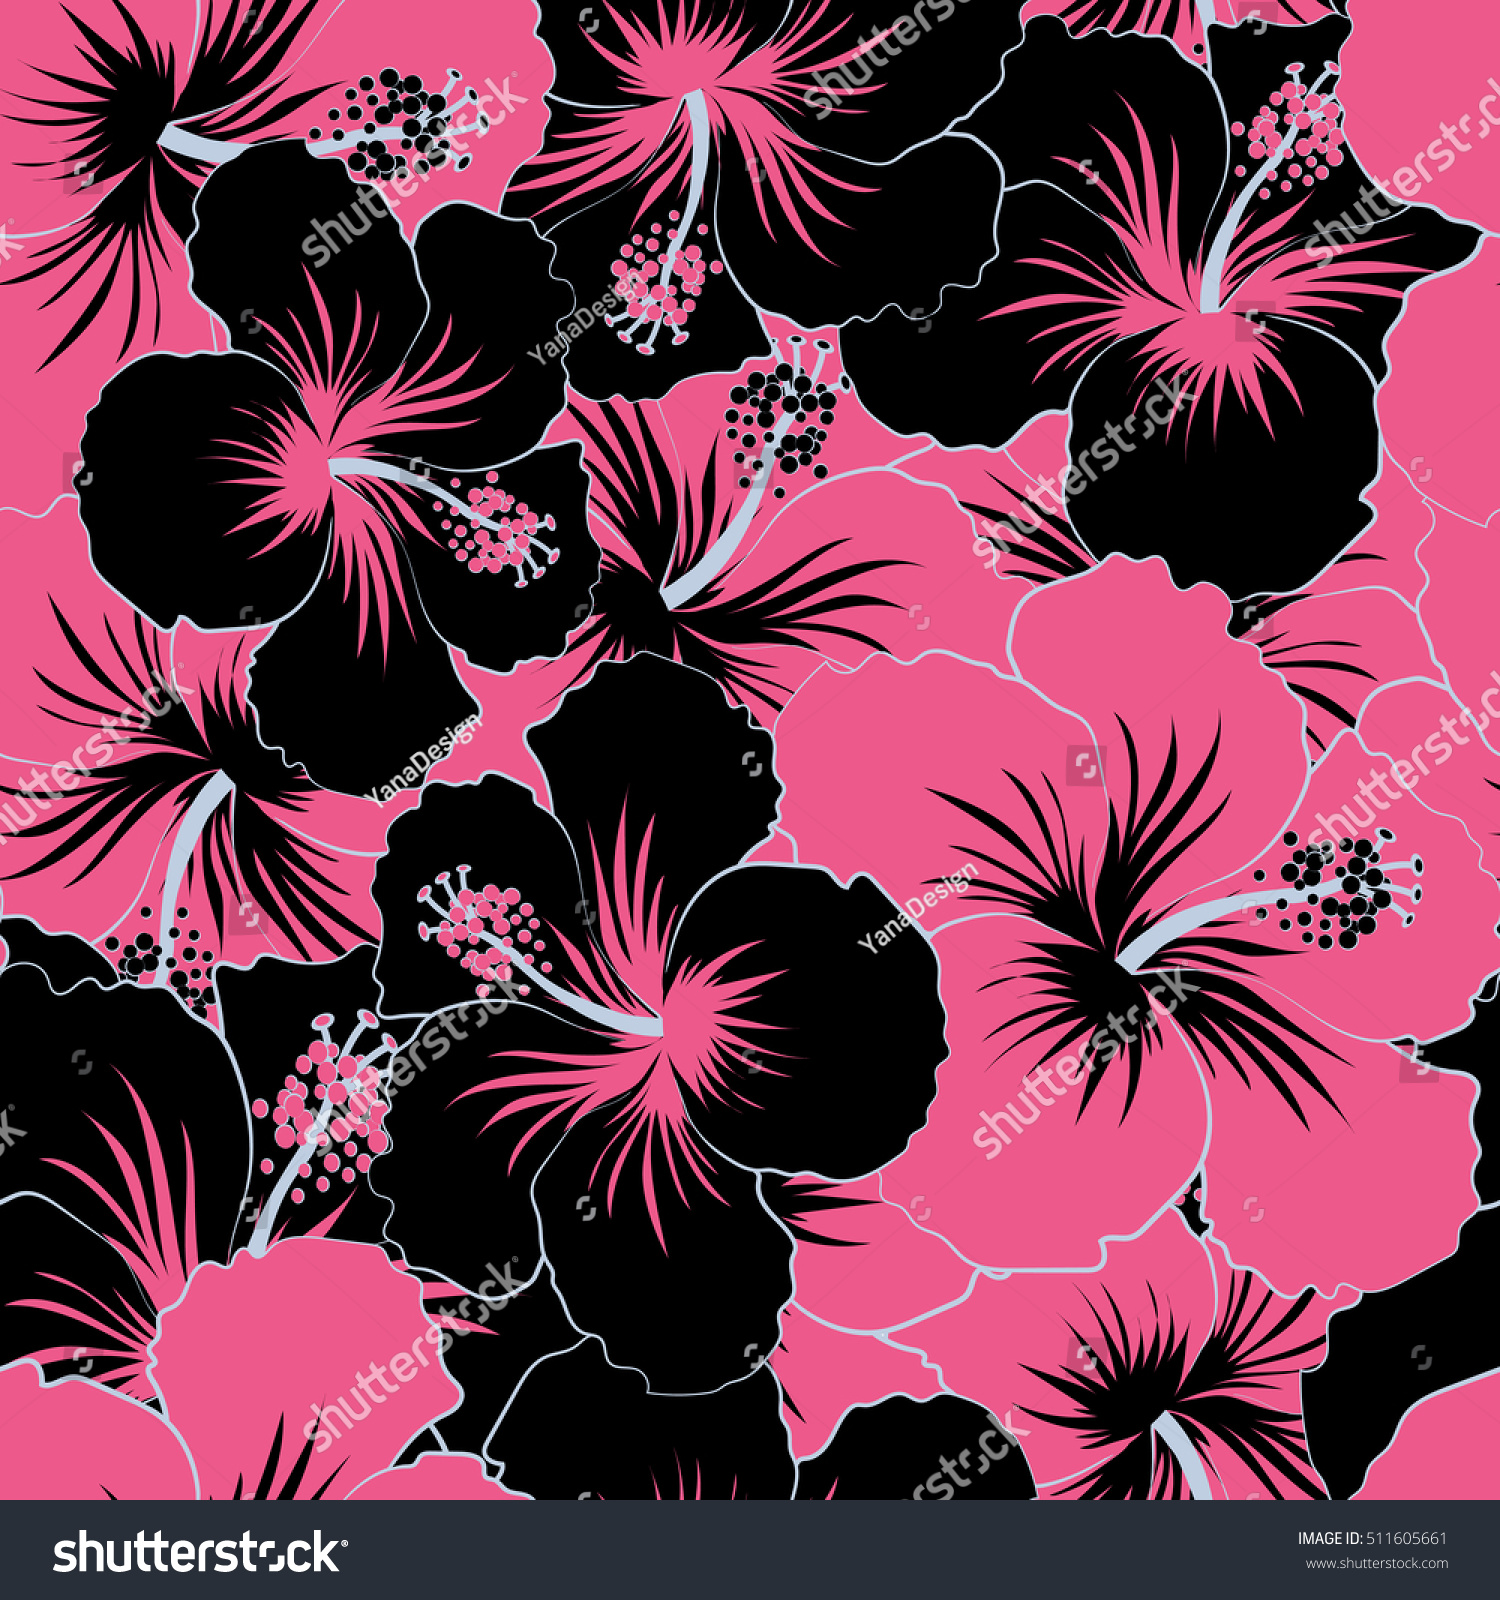 Seamless Pattern Of Stylized Floral Motif Flowers Hole Spots